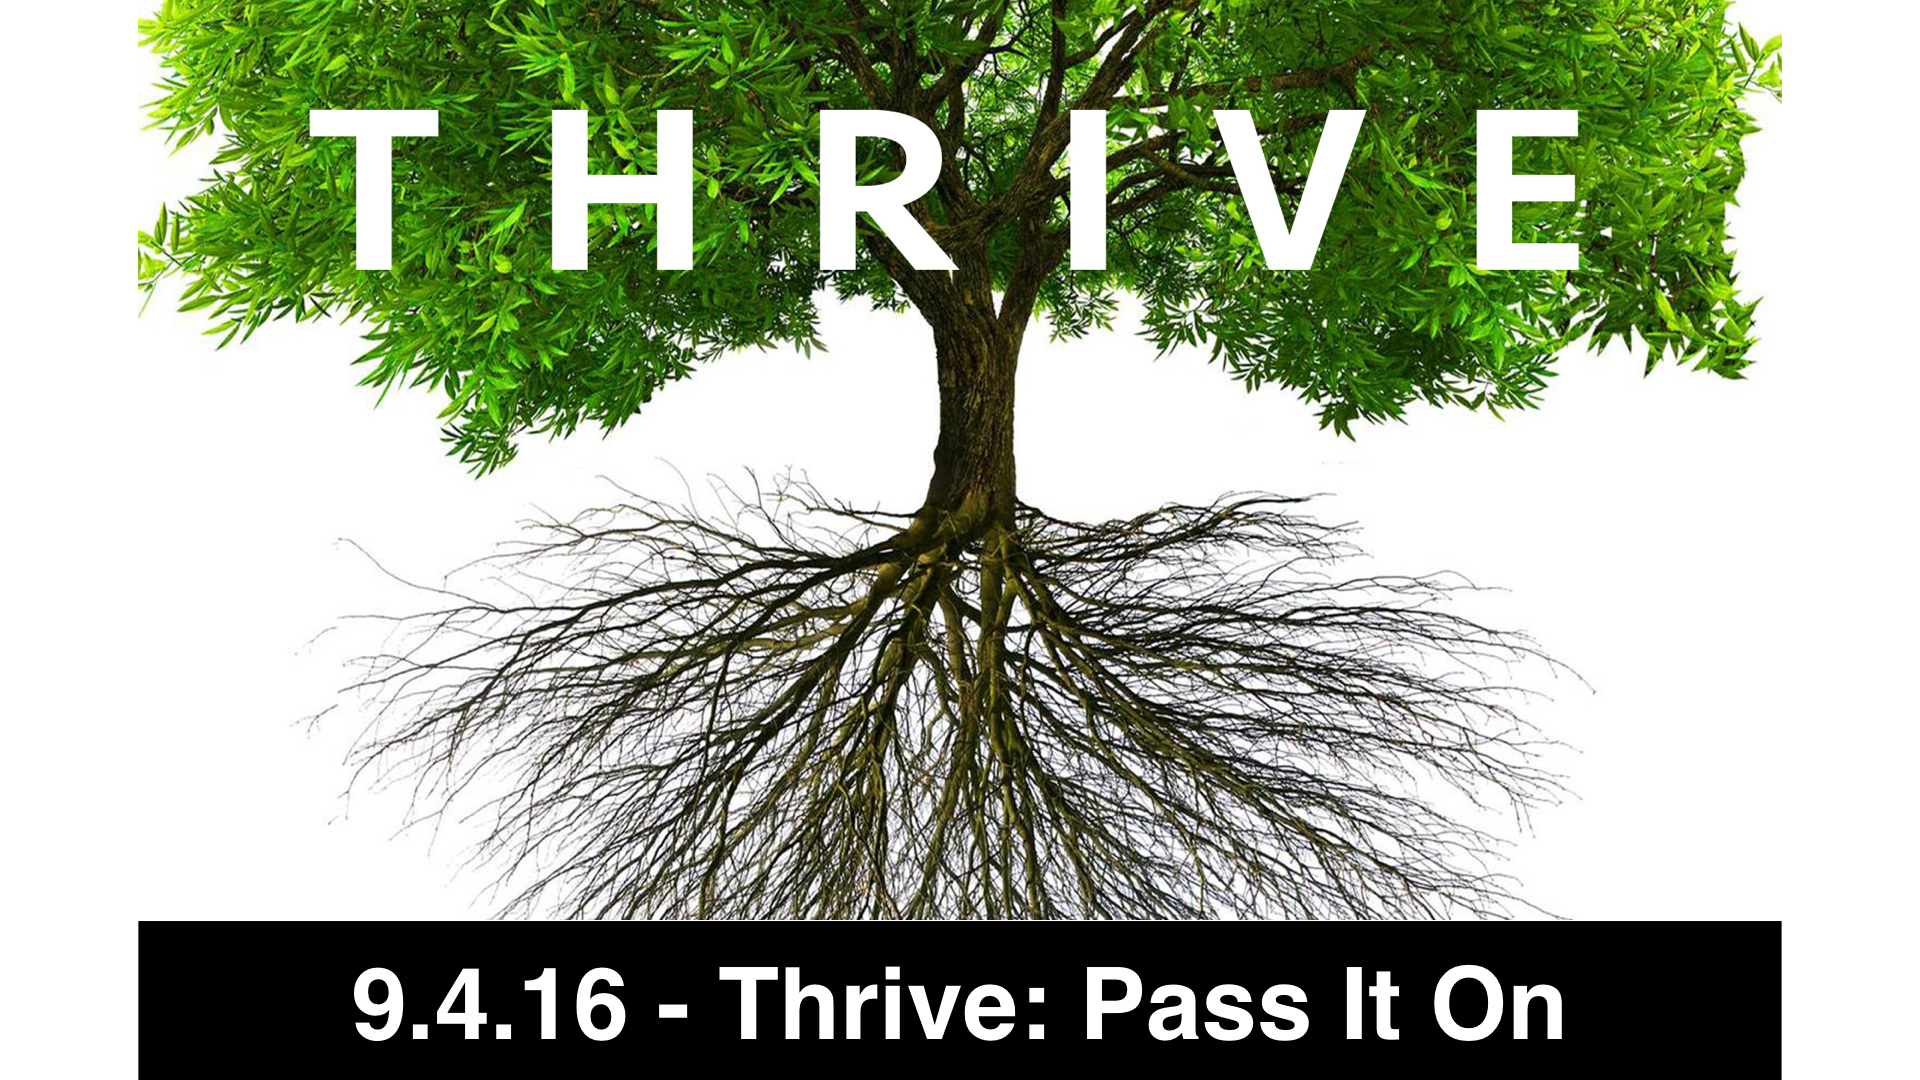 9.4.16 - Thrive: Pass It On